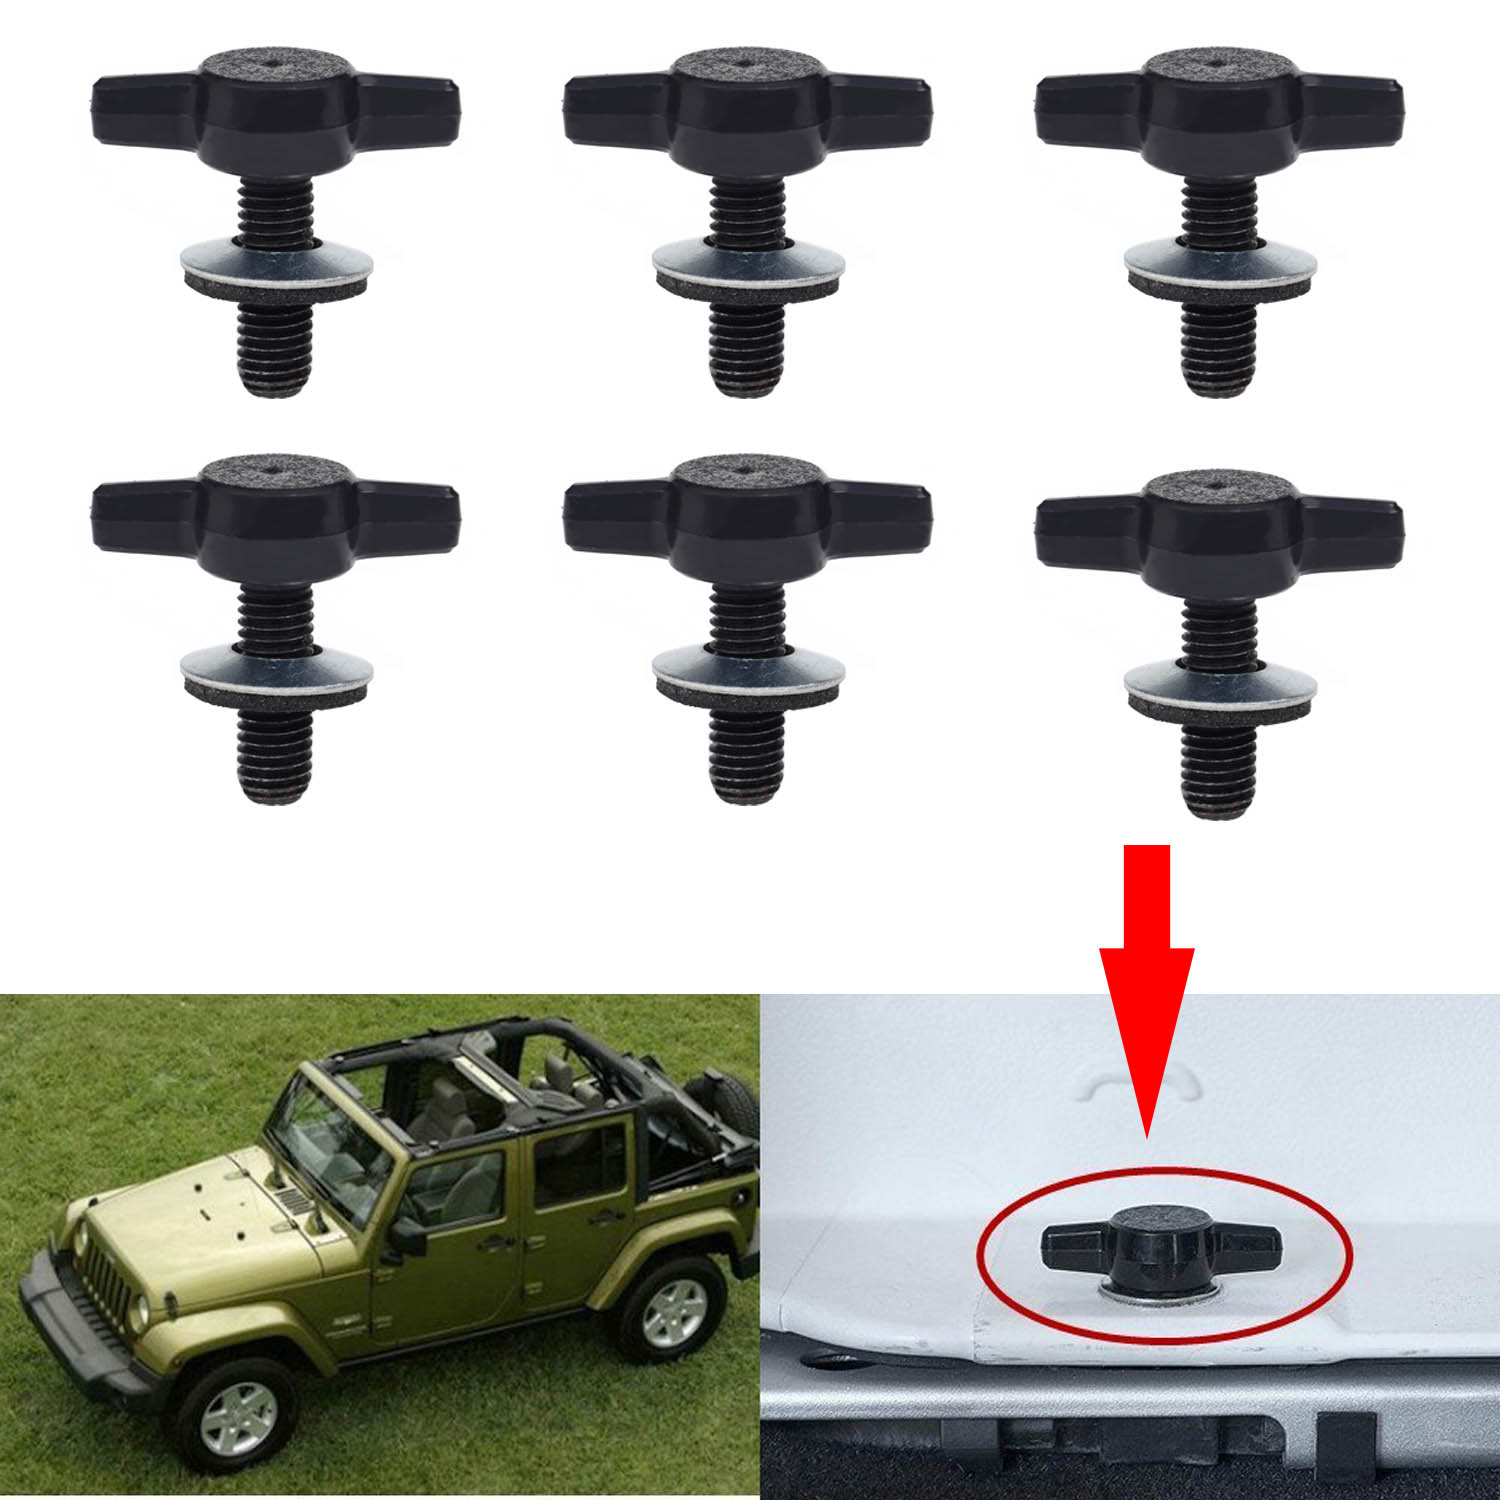 KAWELL Jeep Wrangler JK Hard Top Quick Removal Change Kit set of 6 Tee Knobs Fastener Thumb Screw and Nut Kit fits all 2007 thru 2016 Jeep Wrangler CJ YJ TJ JK Sport Sahara Rubicon Freedom ( Replace Torx Bolts )